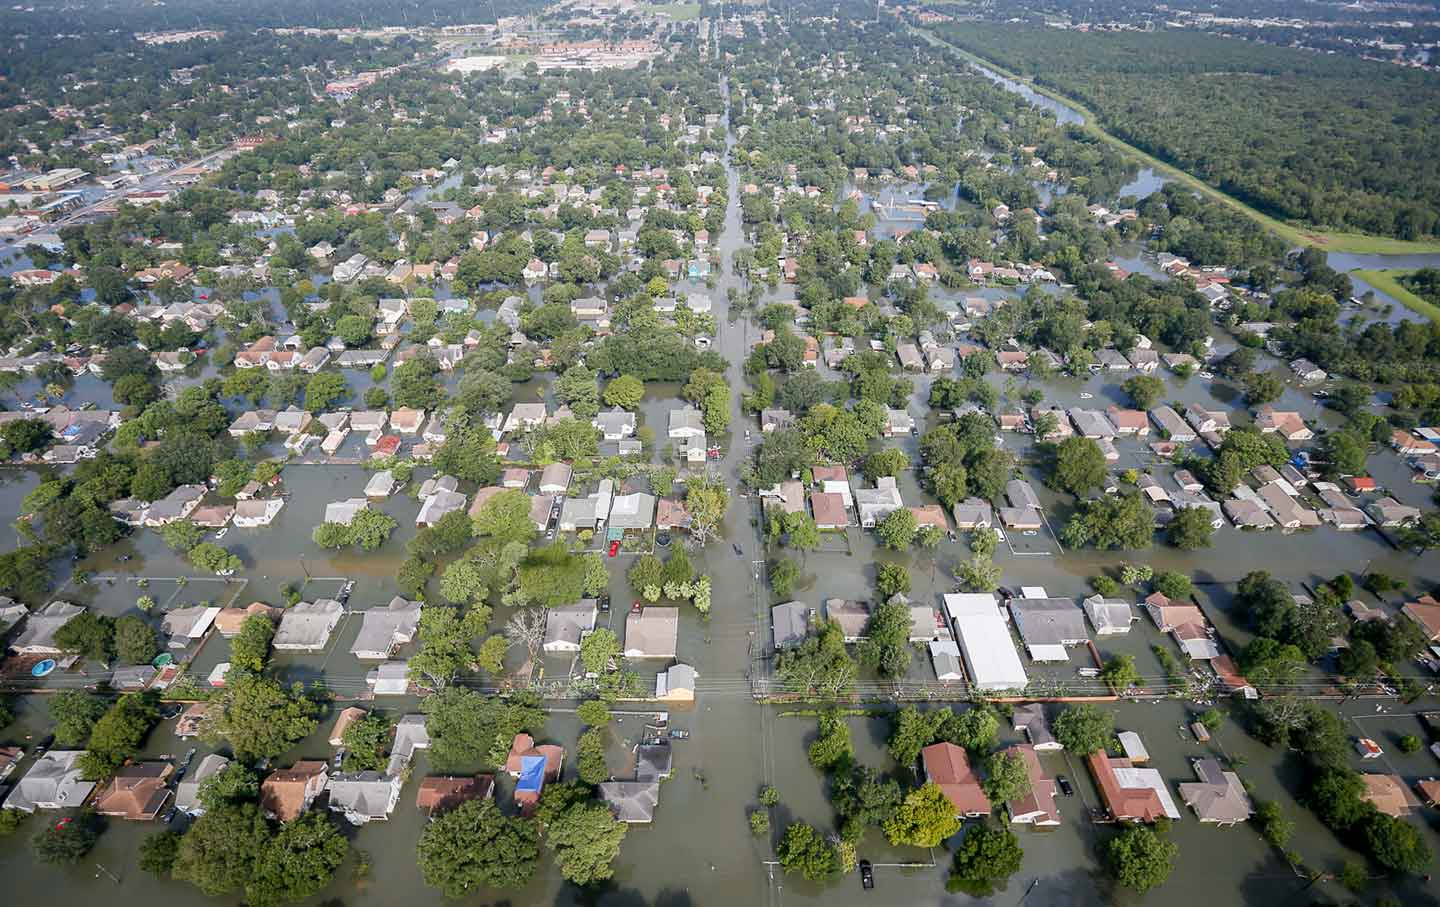 The Political Roots of Houston's Flooding | The Nation